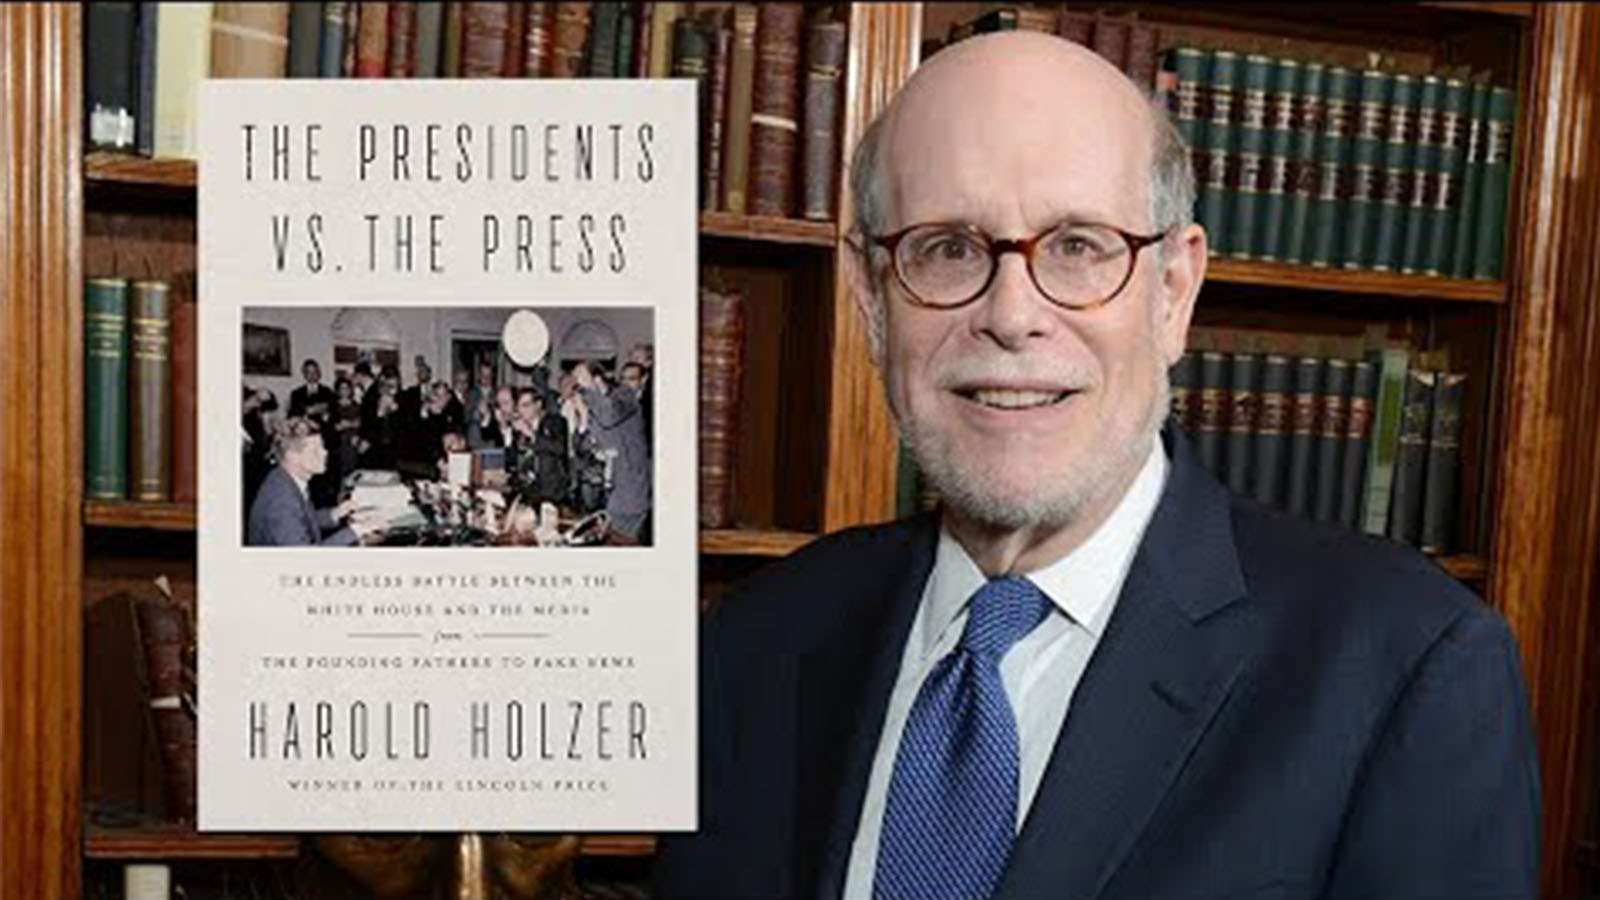 Harold Holzer, the Jonathan Fanton Director of the Roosevelt House Public Policy Institute at Hunter College.